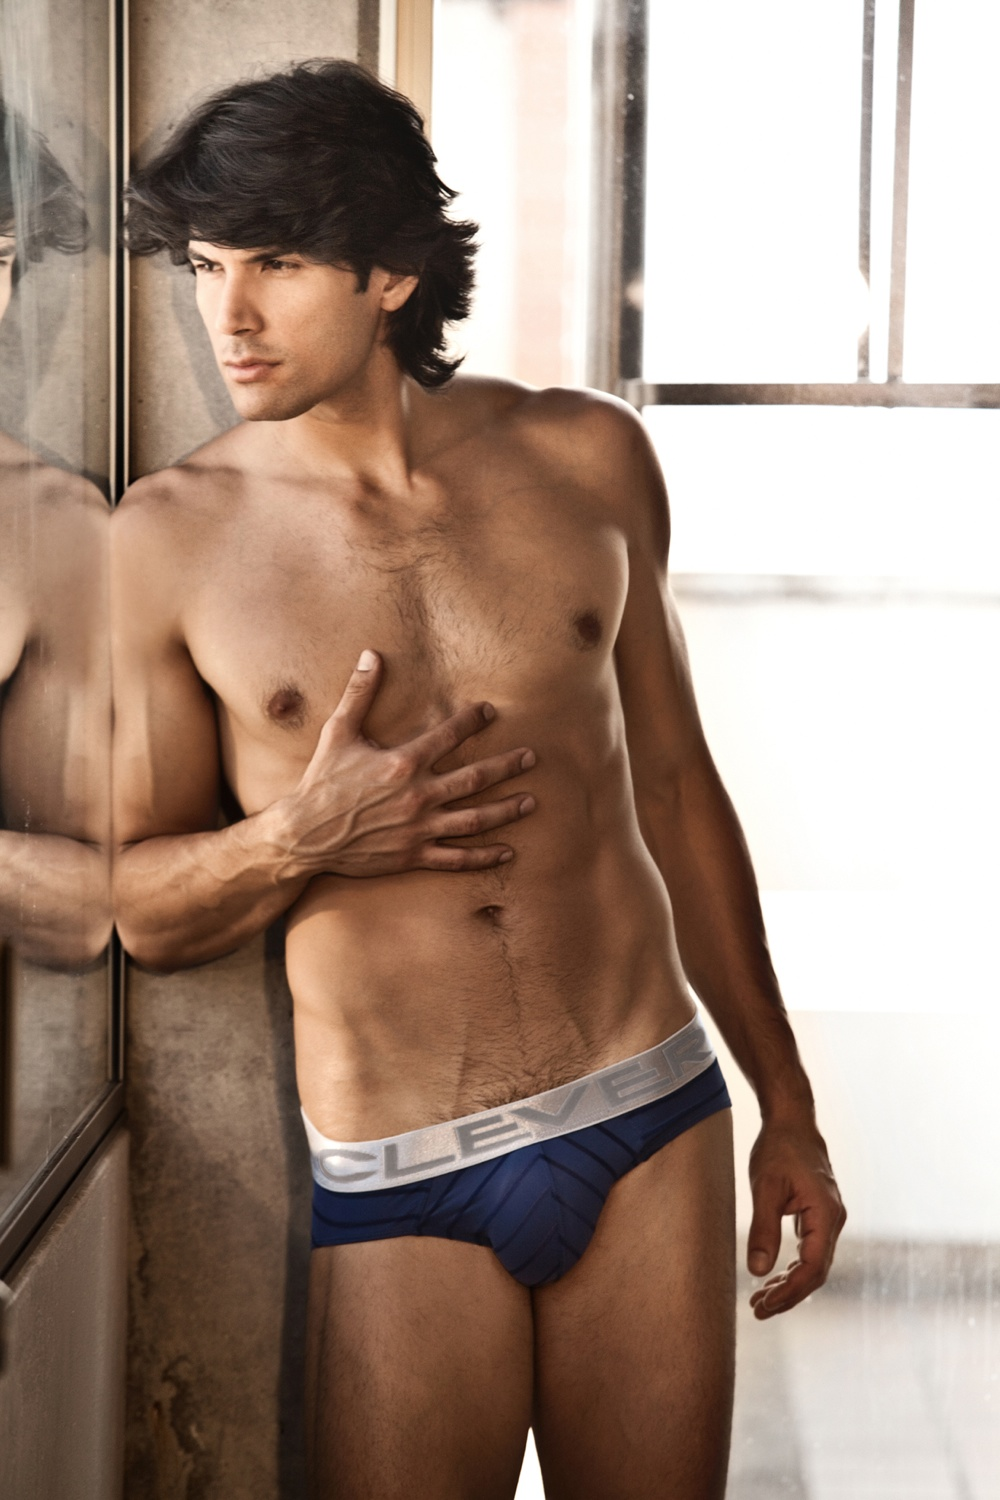 How Revealing Is Your Choice In Underwear, Really? - Part 1